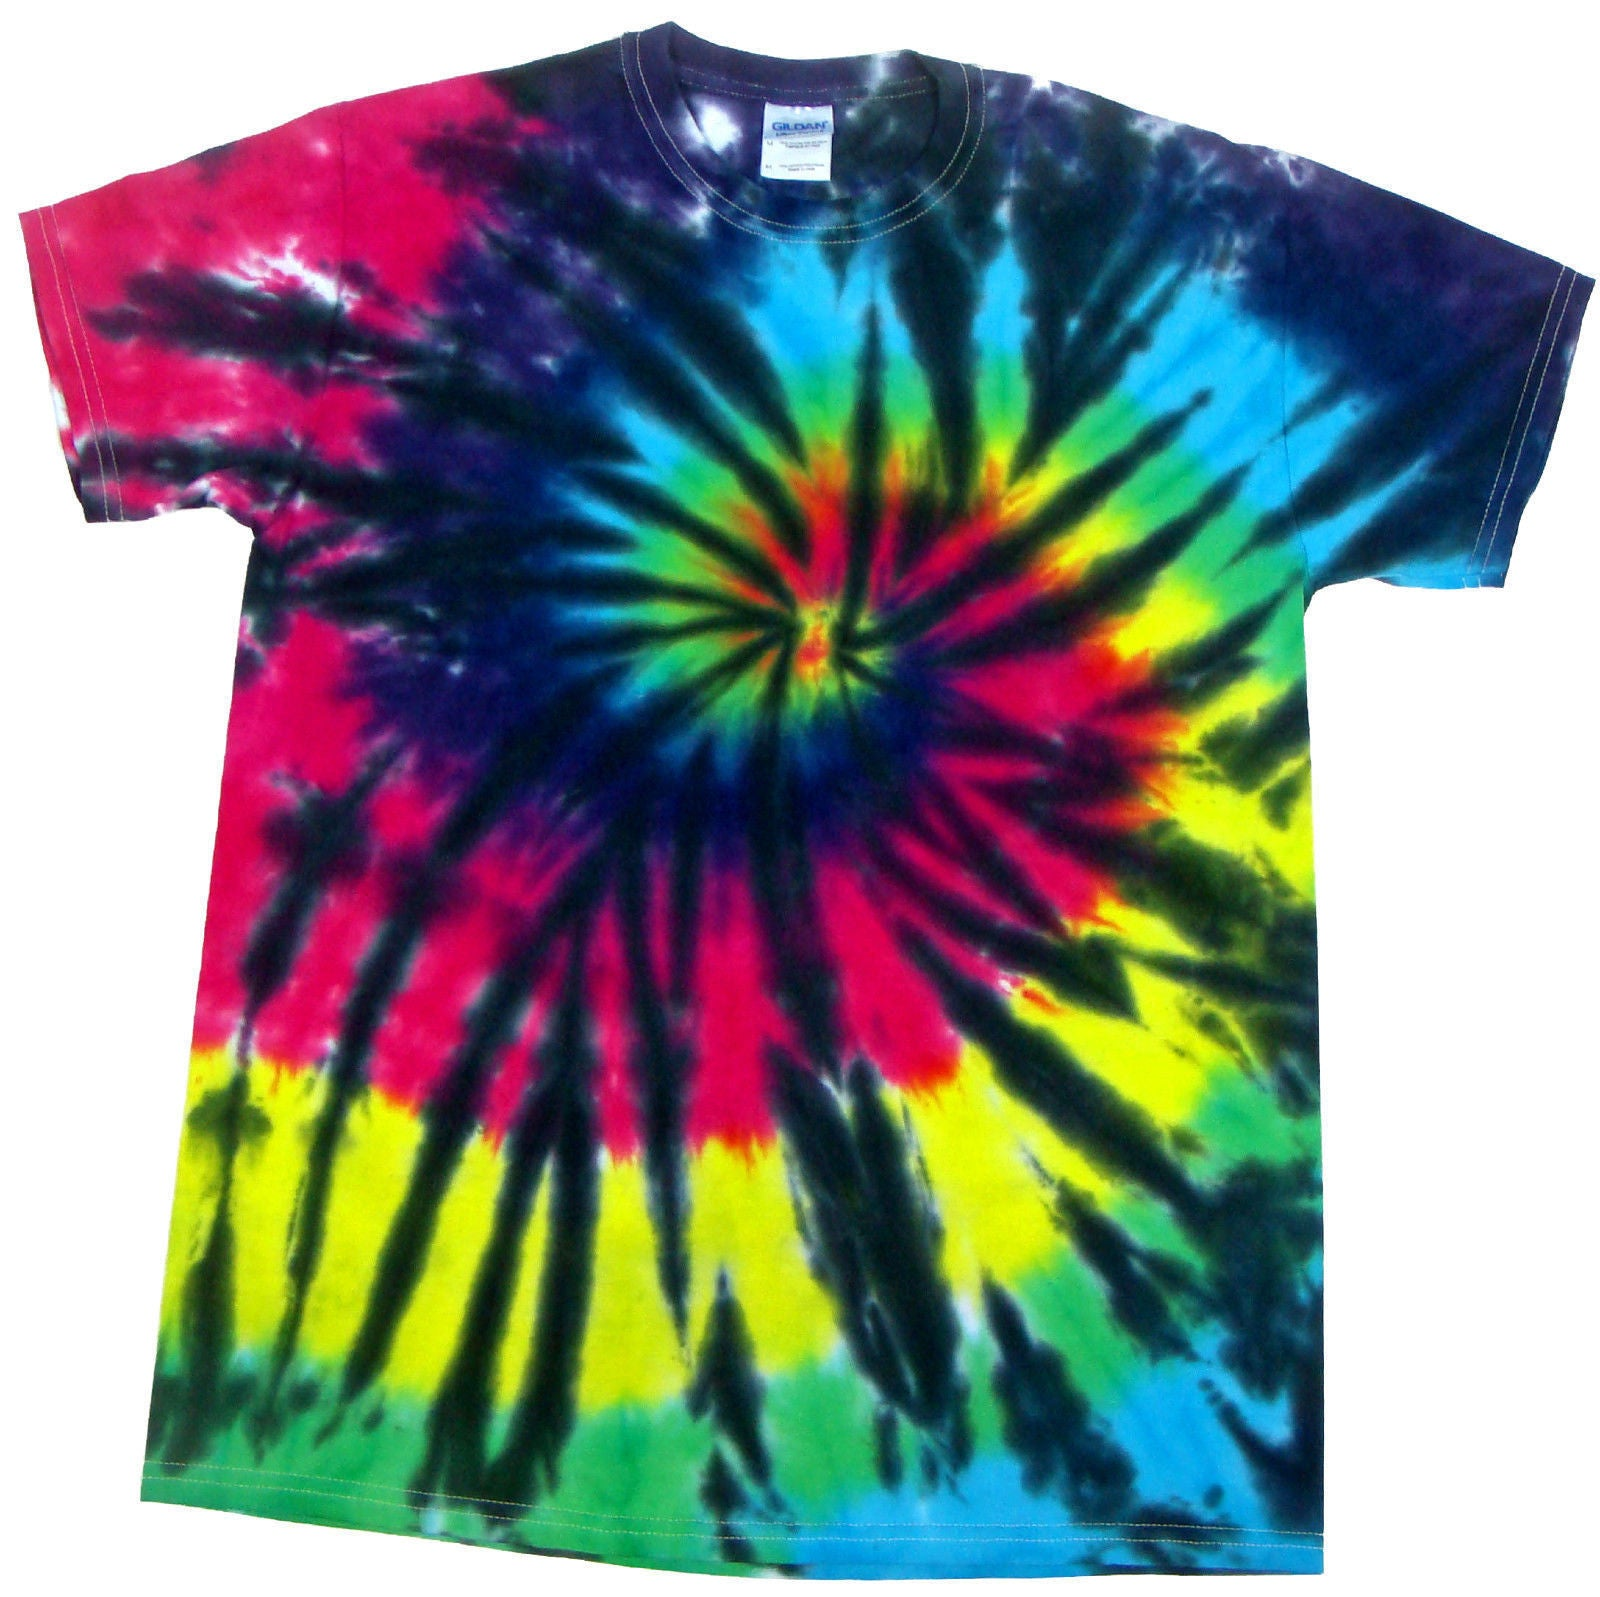 a20d60ead75 How To Spiral Tie Dye T Shirts - BCD Tofu House